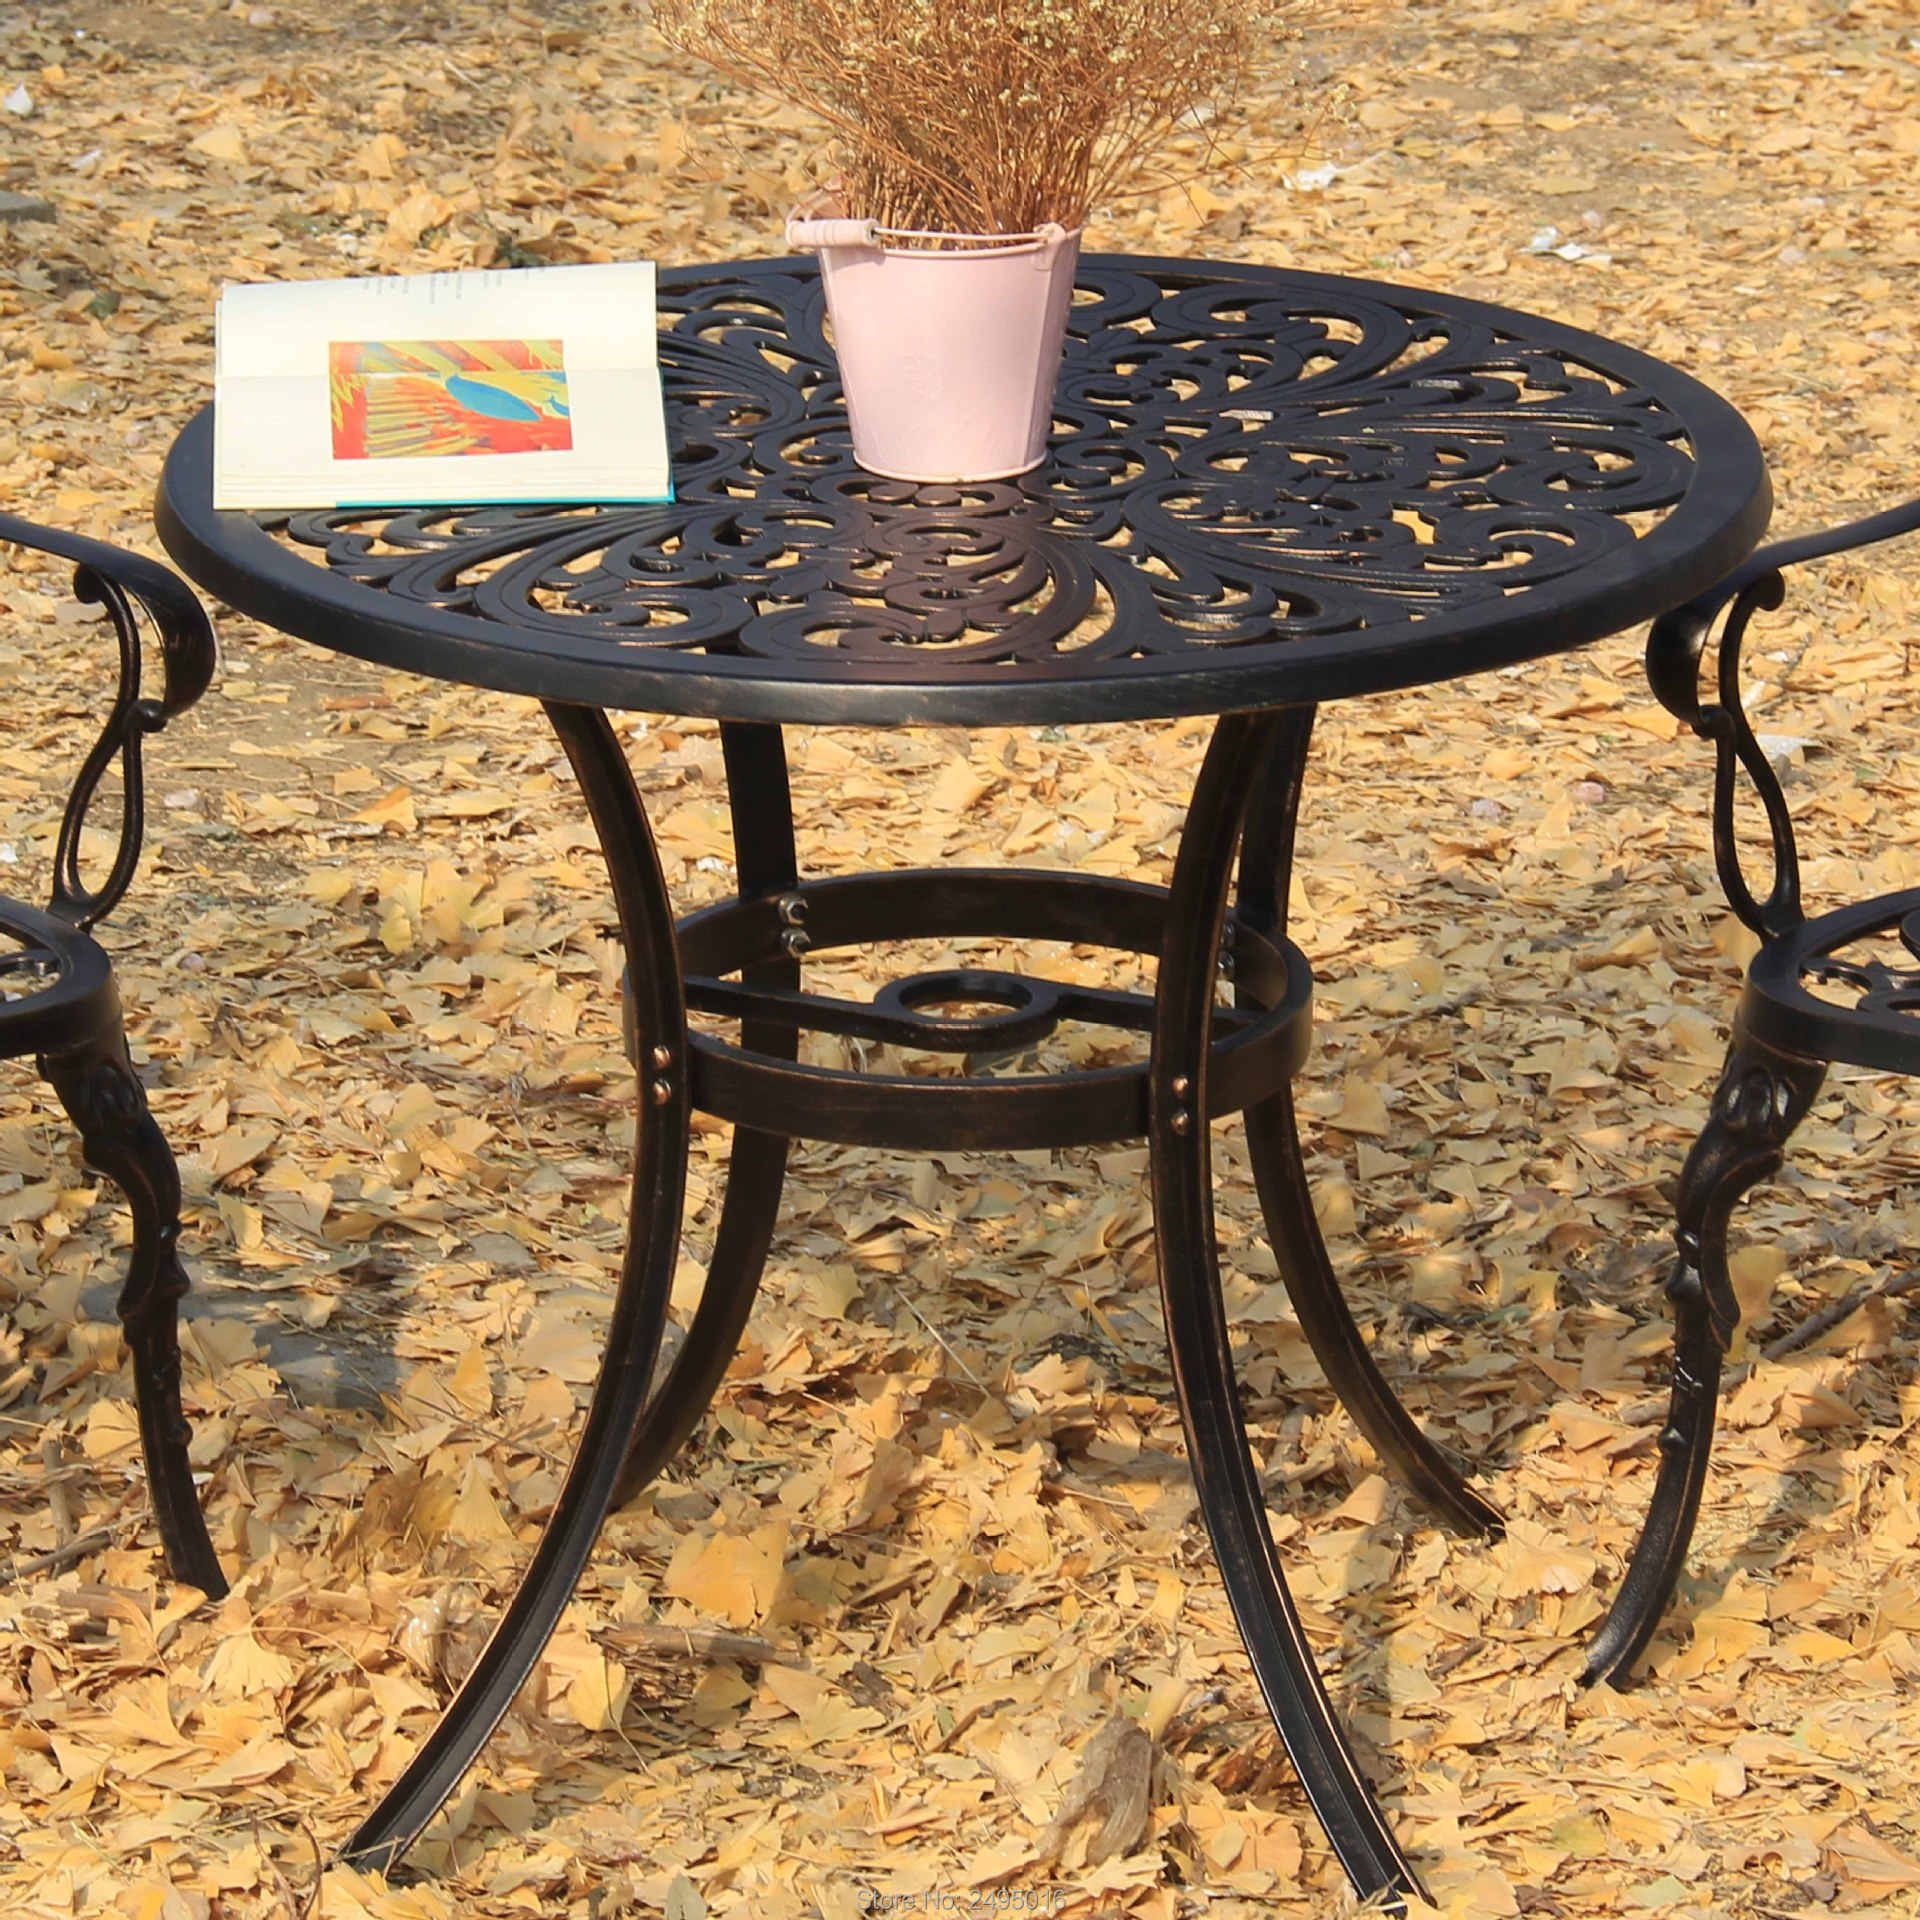 Set 5pcs Patio Furniture Dining Garden Chair And Table Solid Cast Aluminum Chat In Antique Copper